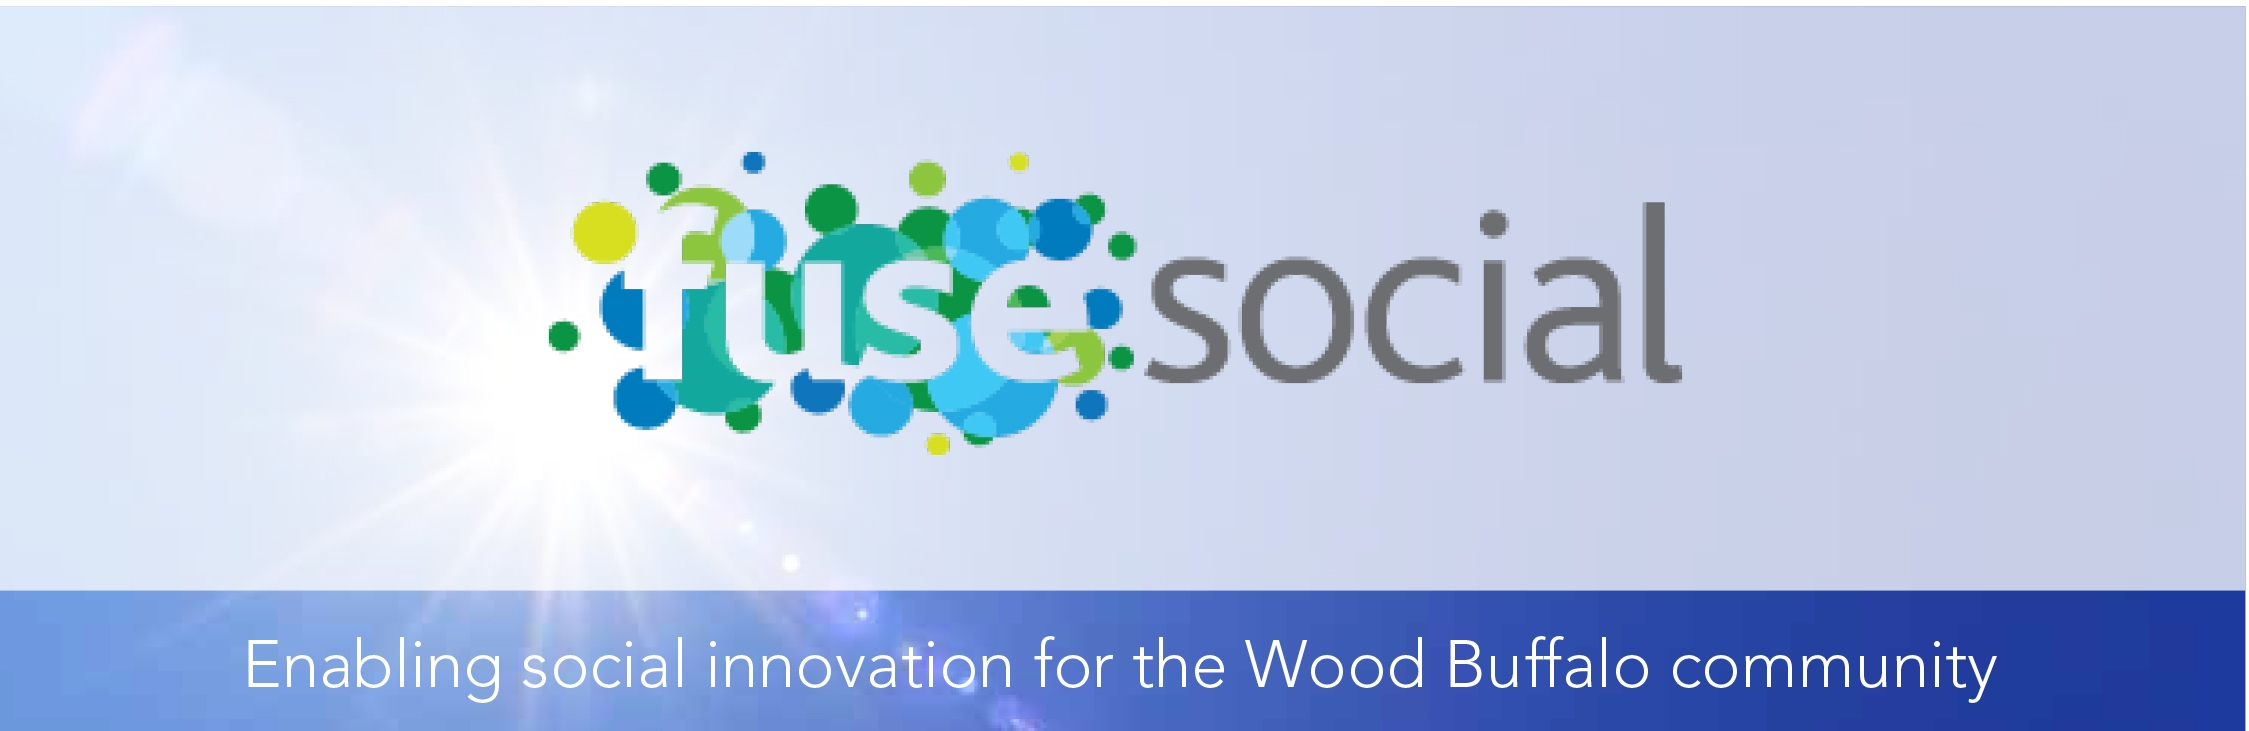 FuseSocial Conducting Survey Looking at Social Profit Sector's Impact on RMWB Economy